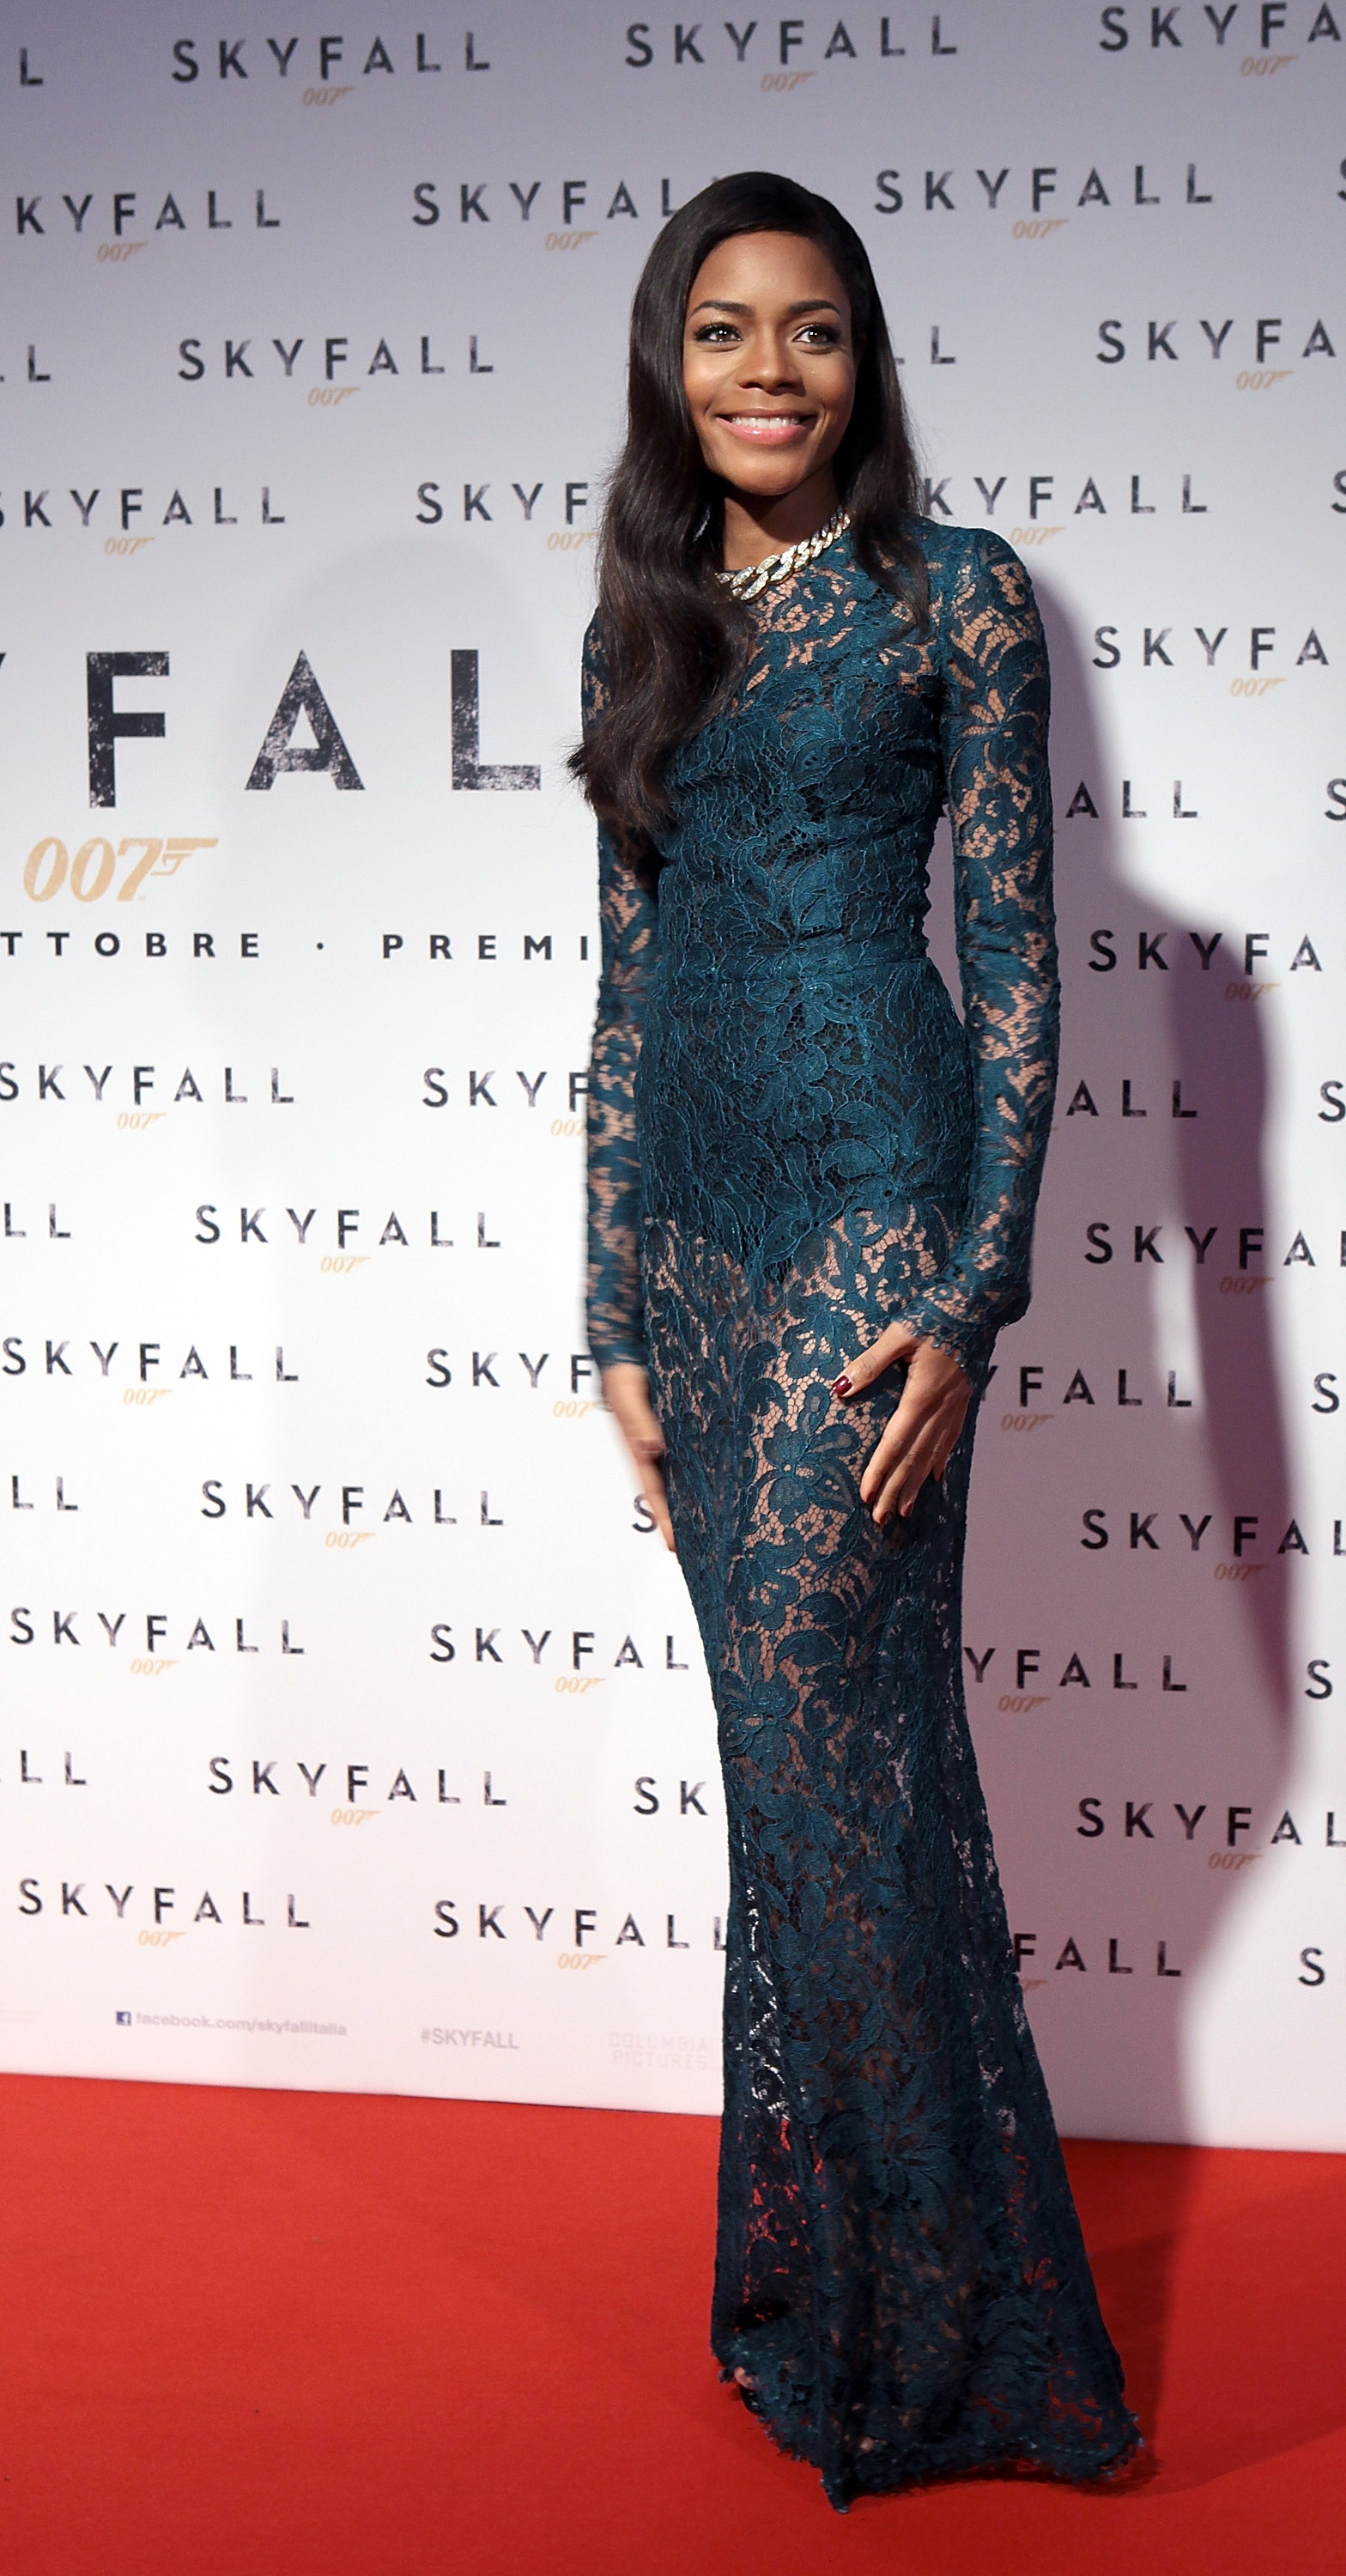 Naomie Harris showed off her figure in a lace dress.